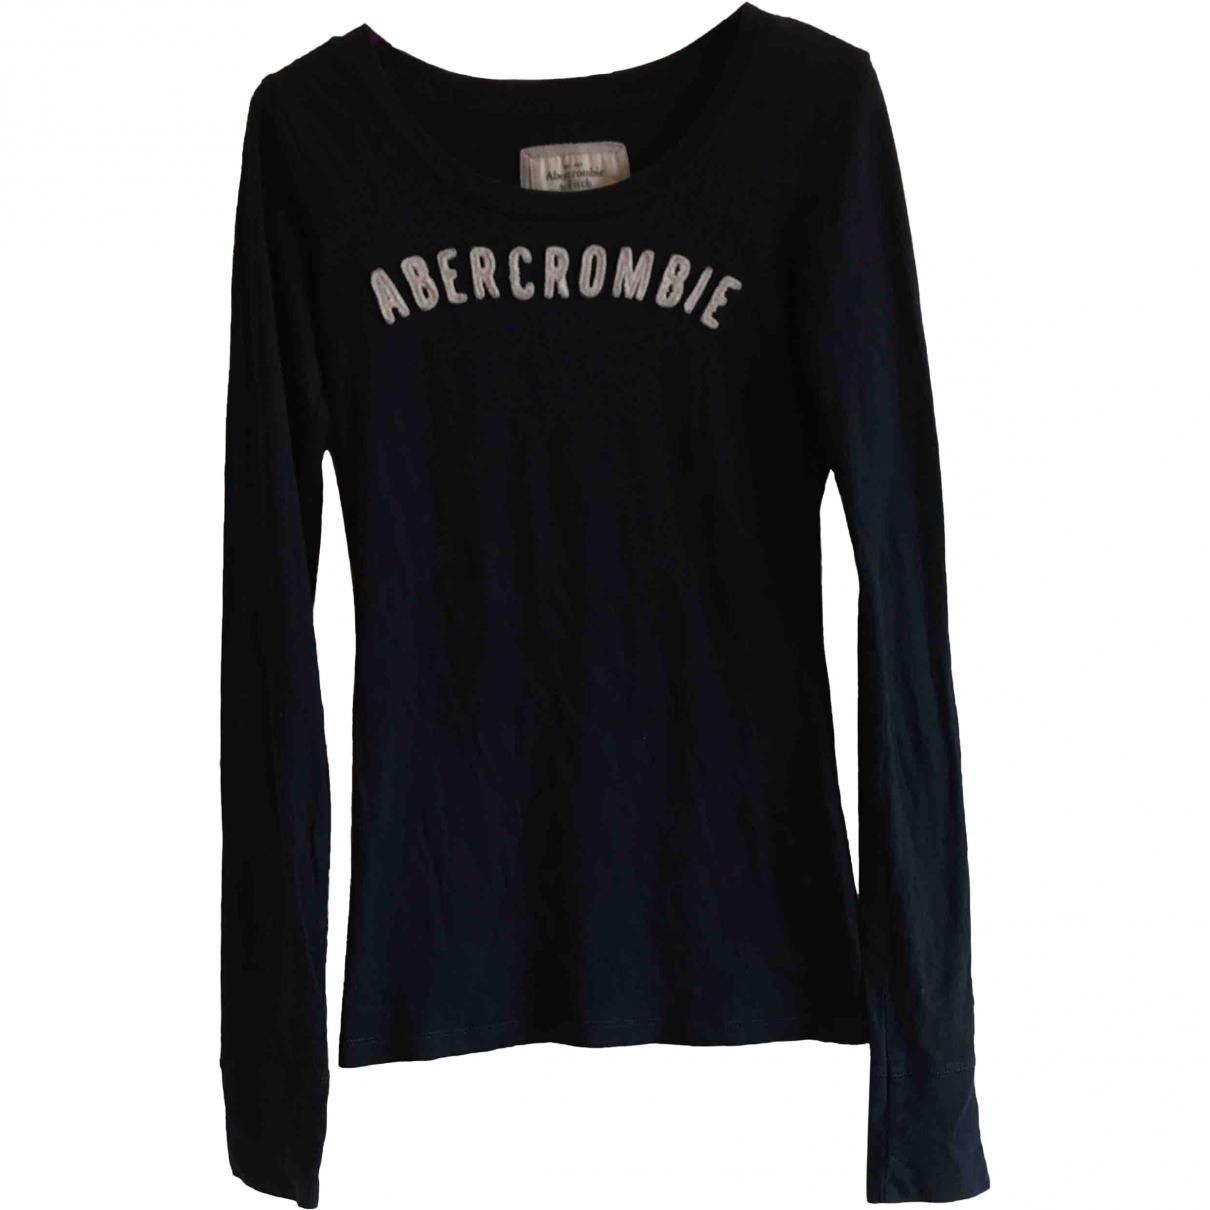 Abercrombie & Fitch \N Navy Cotton  top for Women XS International